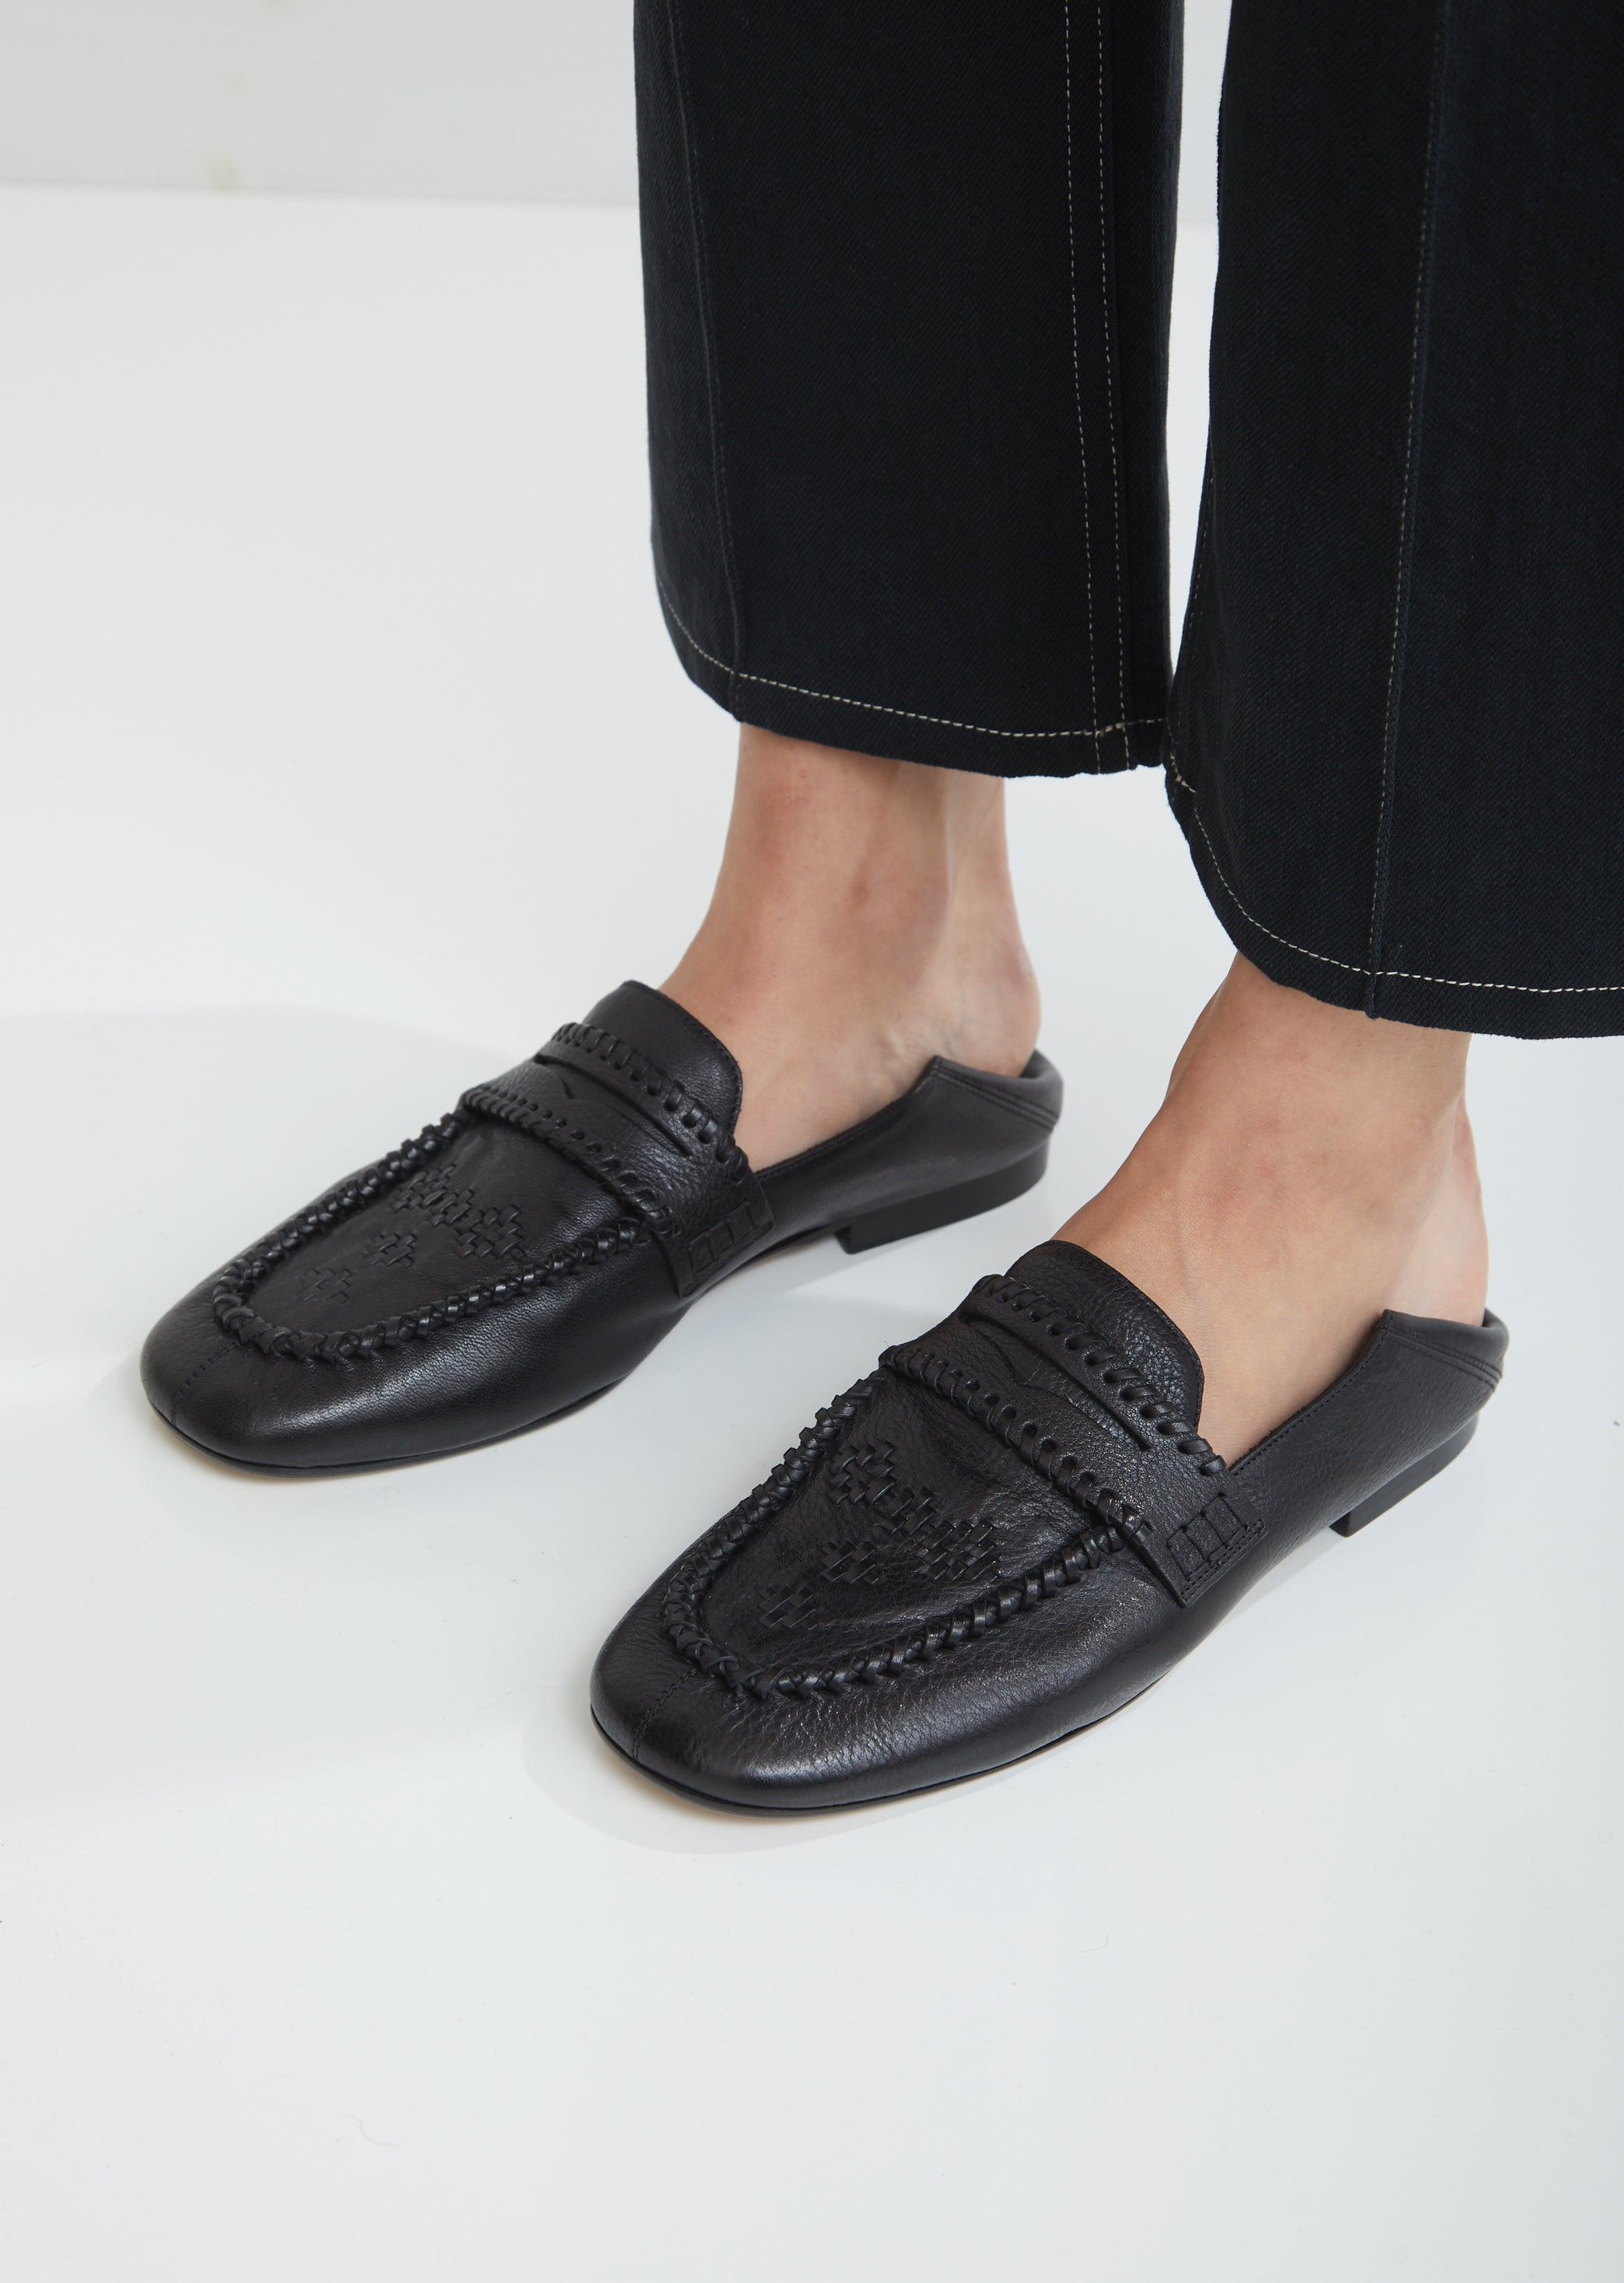 Firven Braided Leather Loafers by